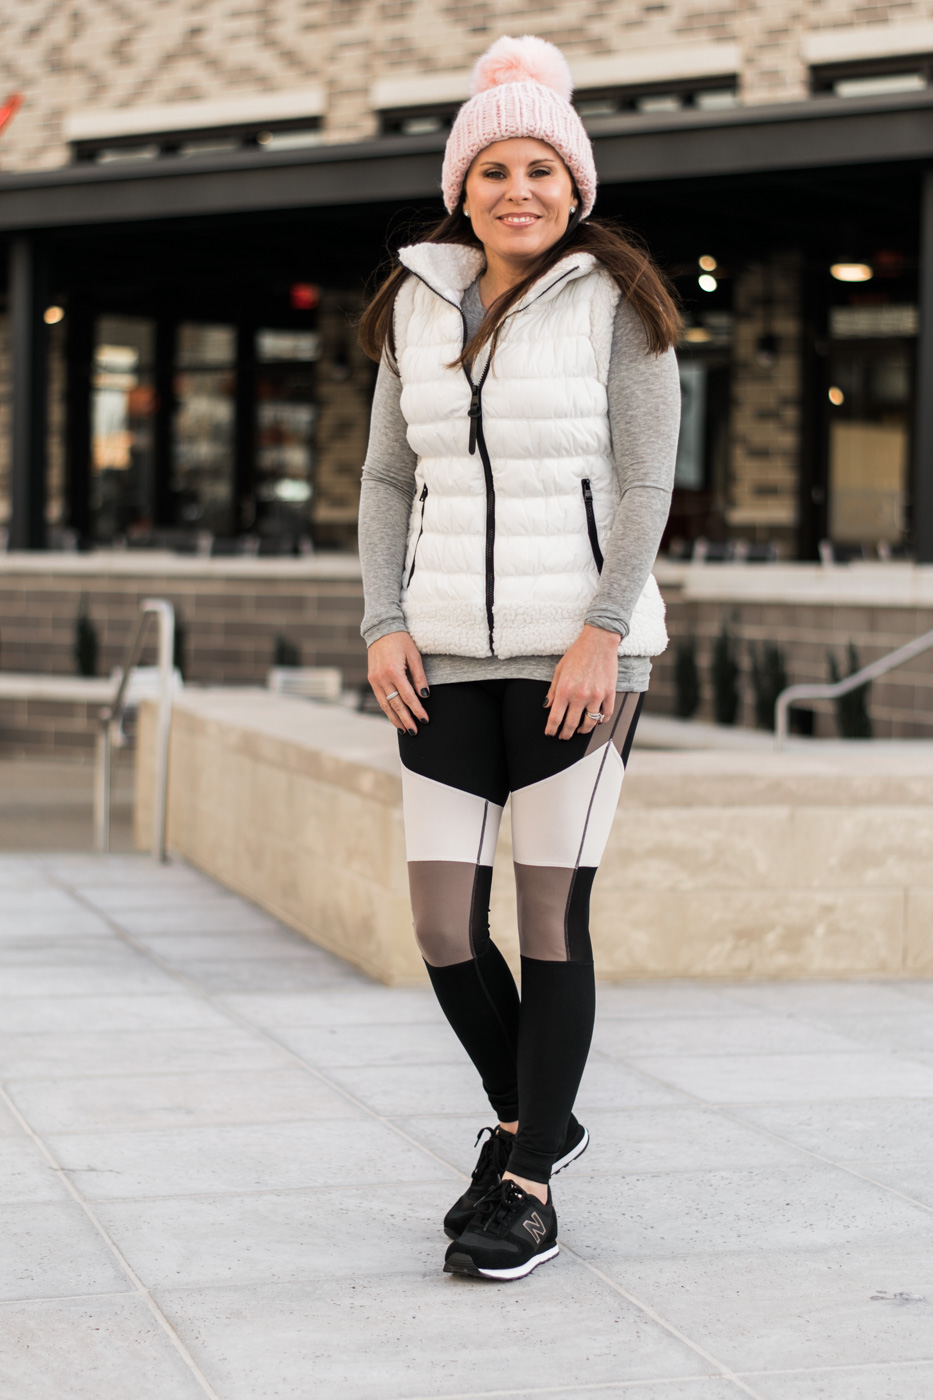 Calvin Klein Performance Sherpa Vest, New Balance Sneakers, Free People Happy Trails Pom Beanie, Trouve Layering Tee